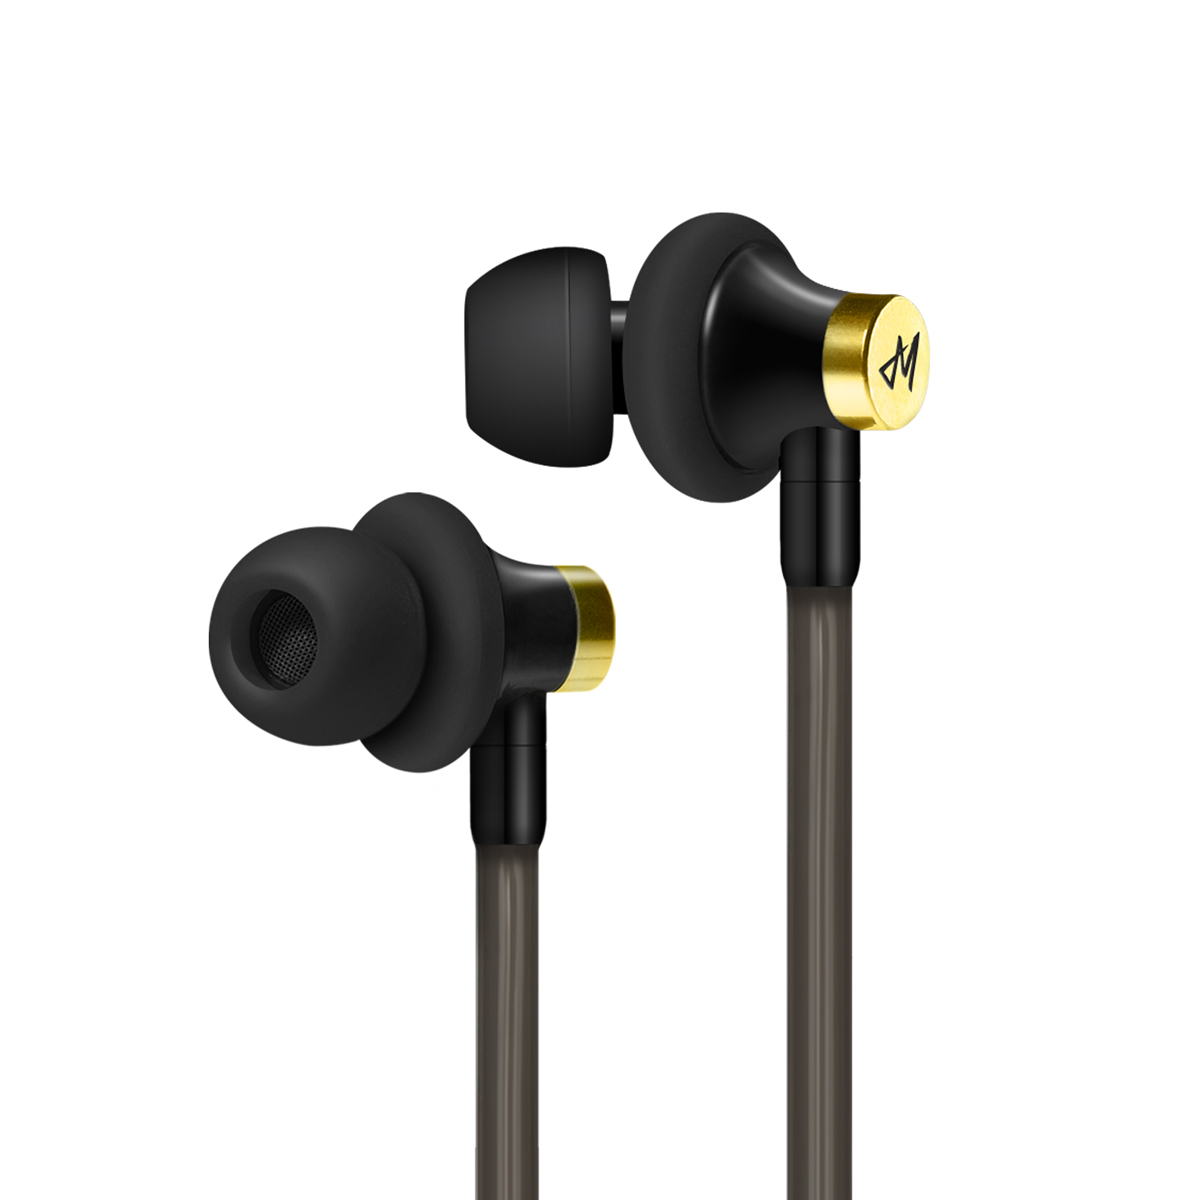 Earbuds with mic for iphone - apple earbuds for iphone 6s